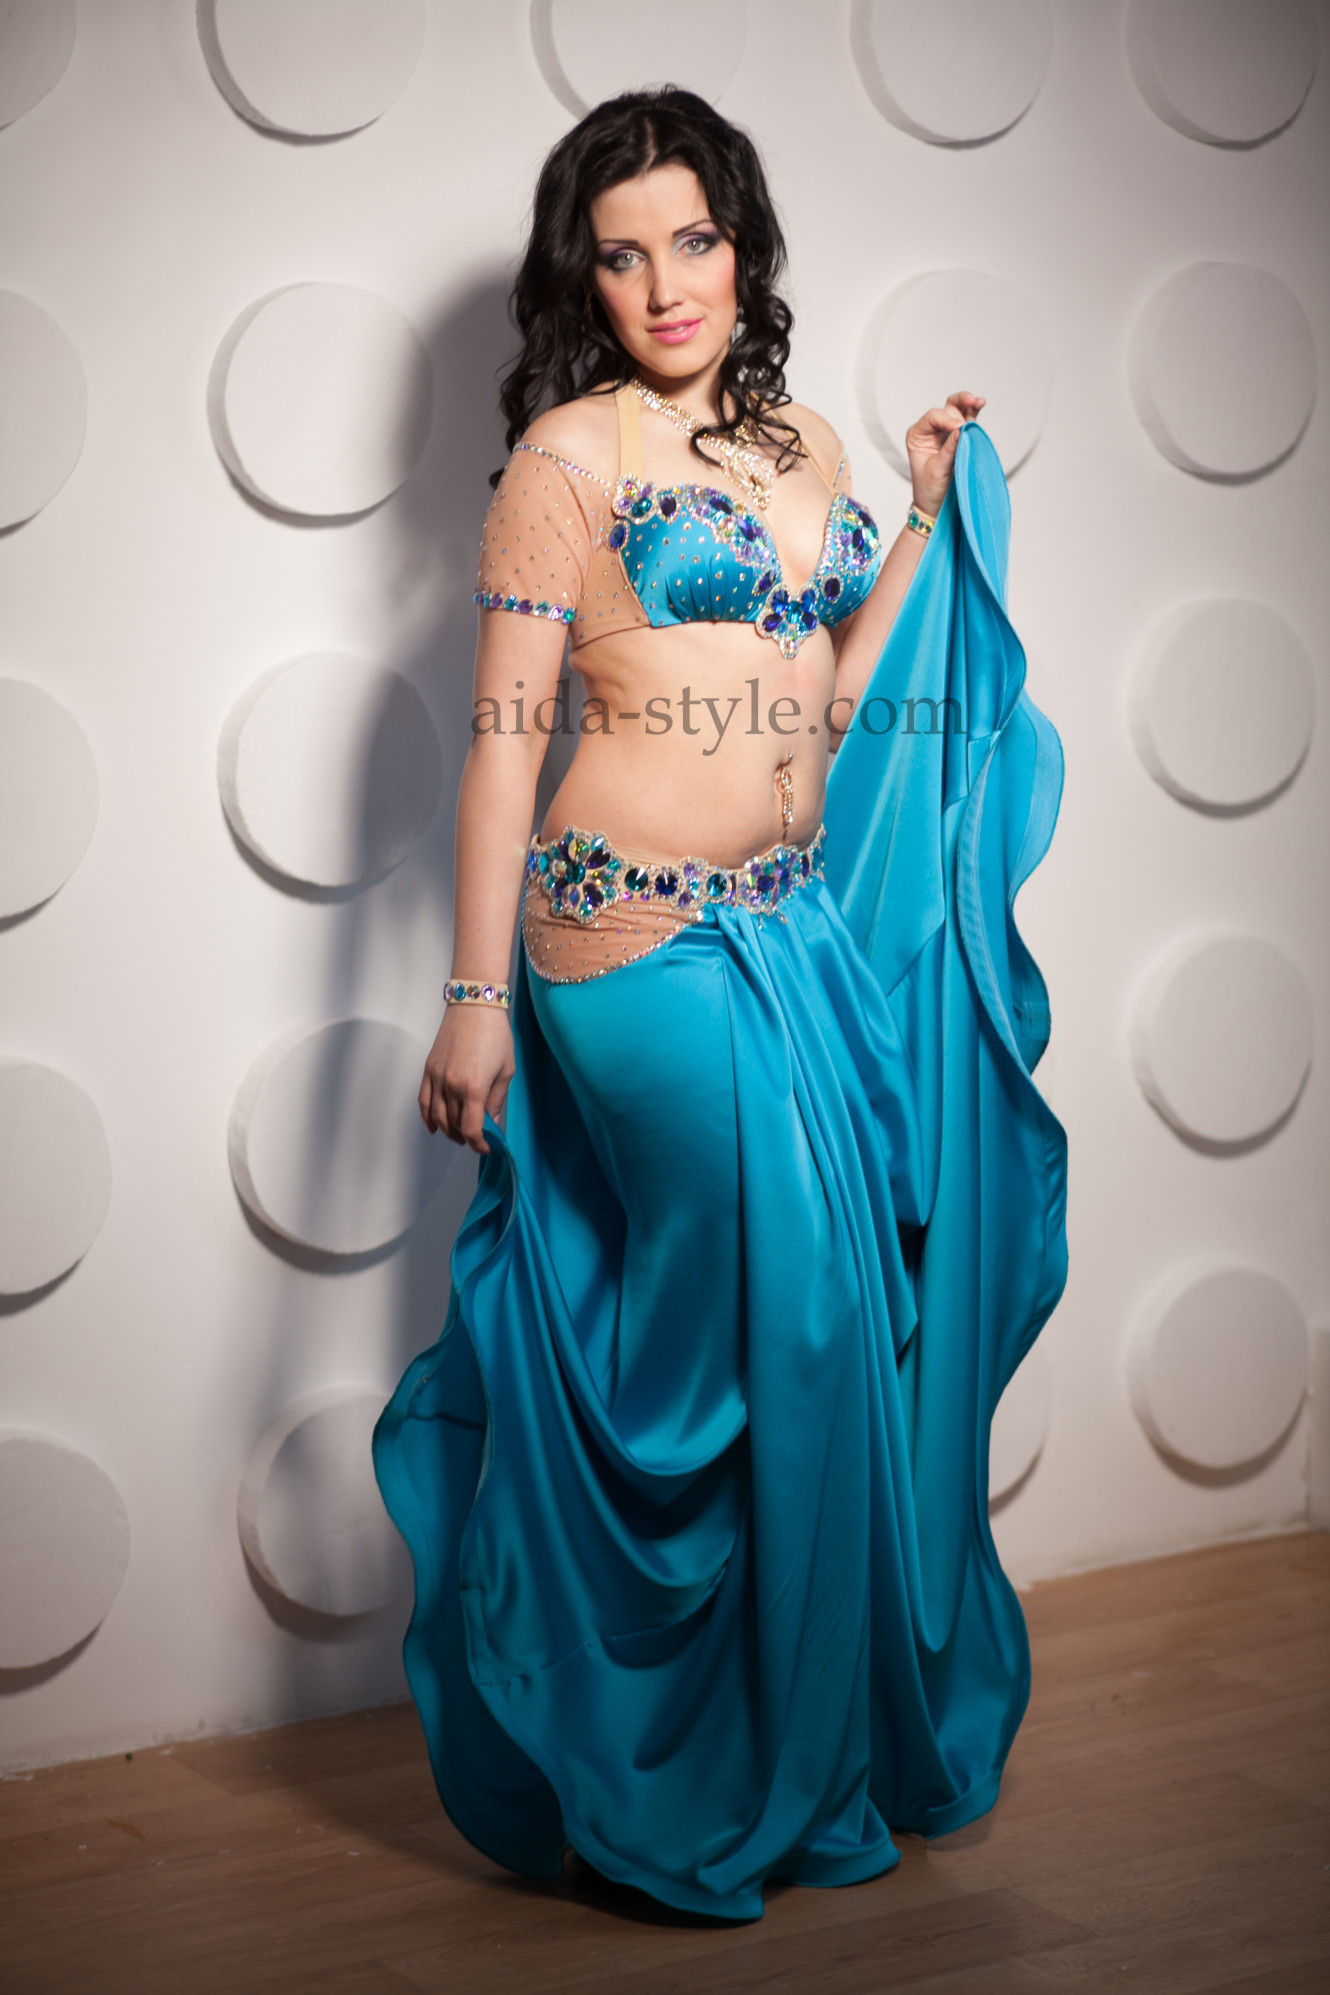 Blue professional belly dance costume with bright stones applied on bra and belt